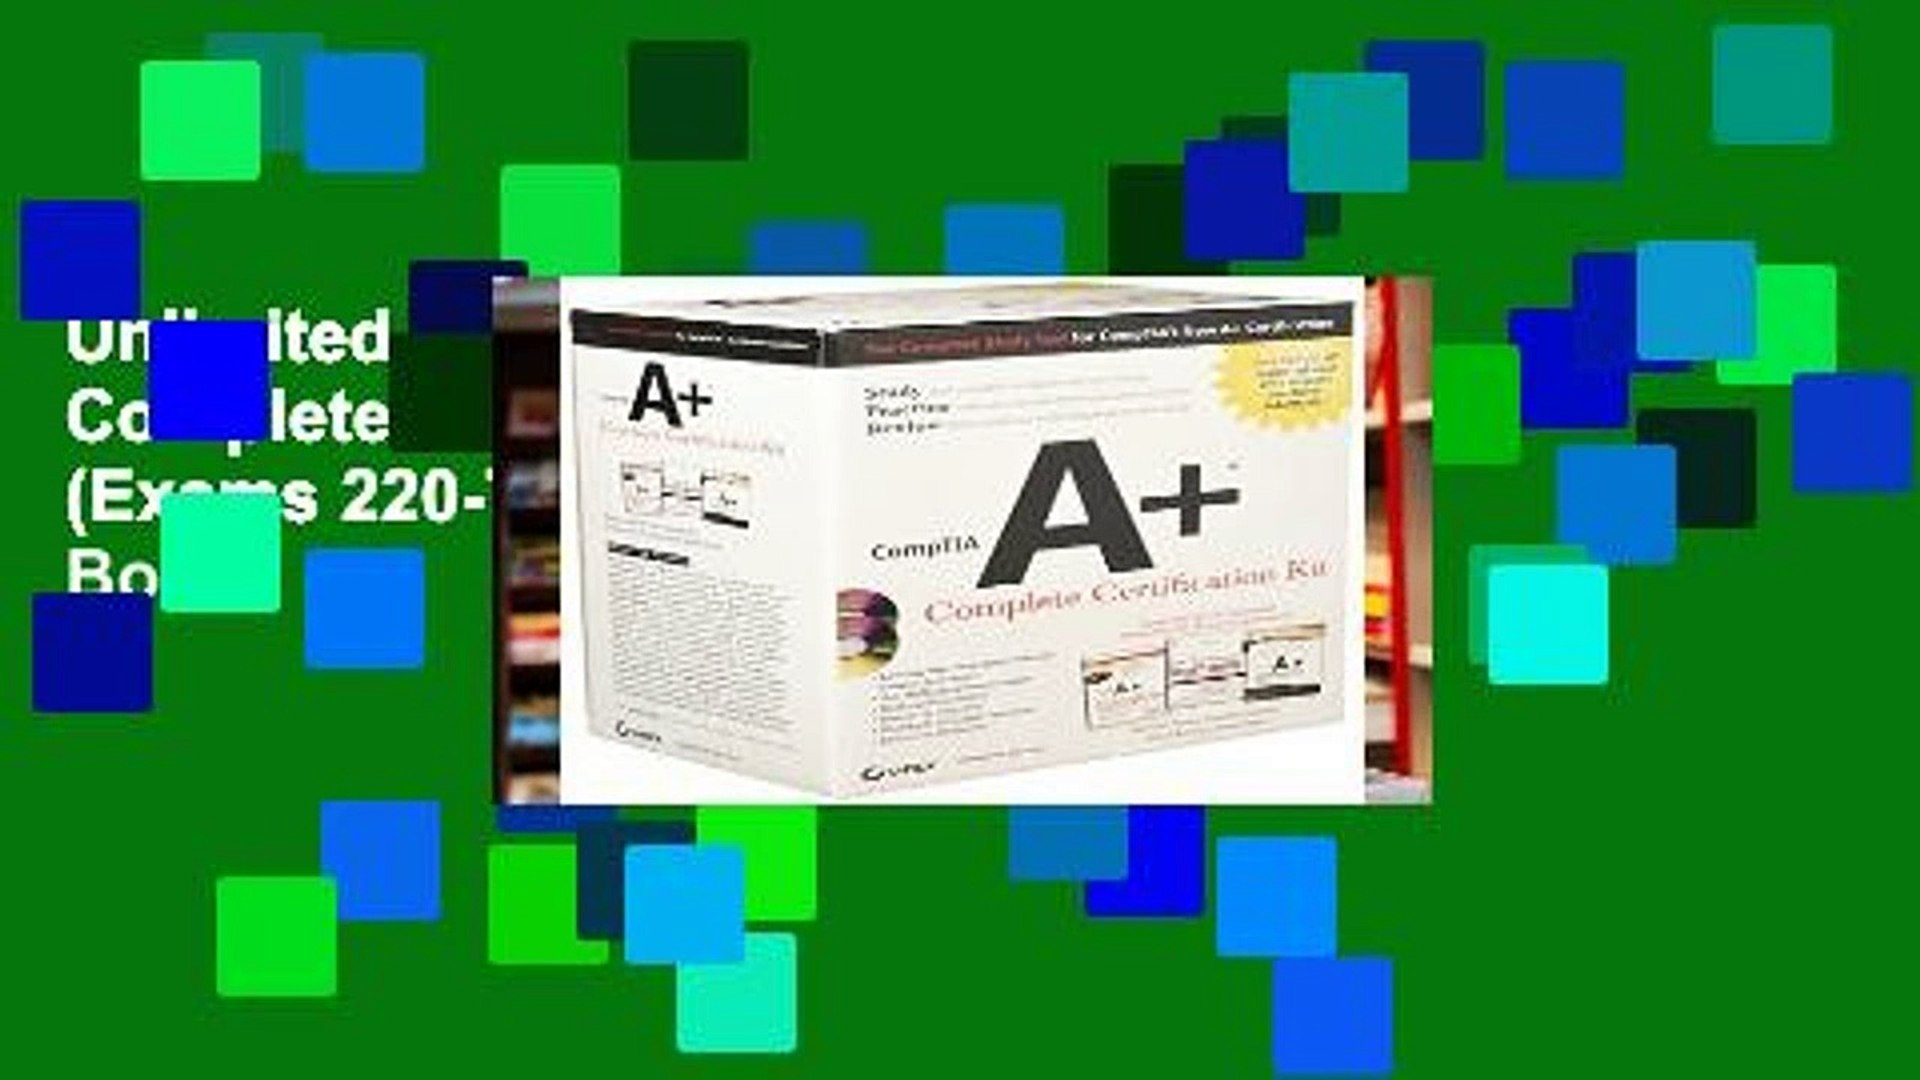 Unlimited acces CompTIA A+ Complete Certification Kit (Exams 220-701 and 220-702) Book